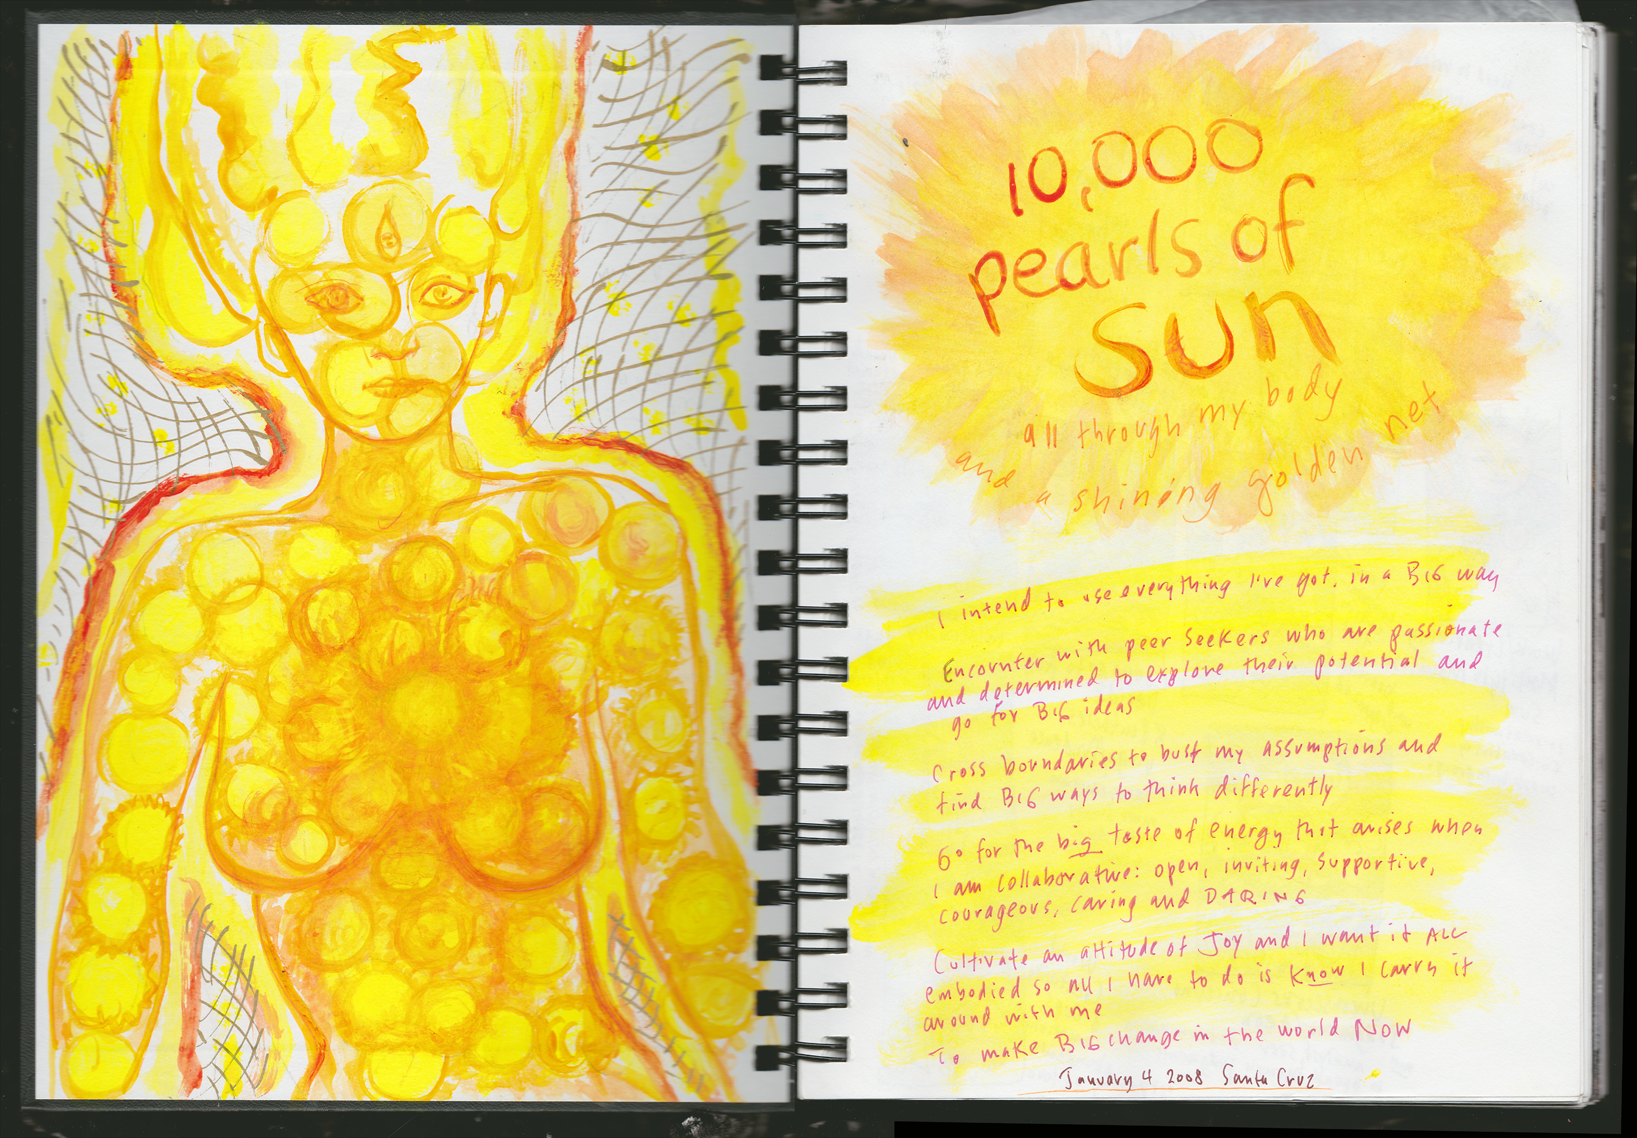 1000 Pearls of Sun